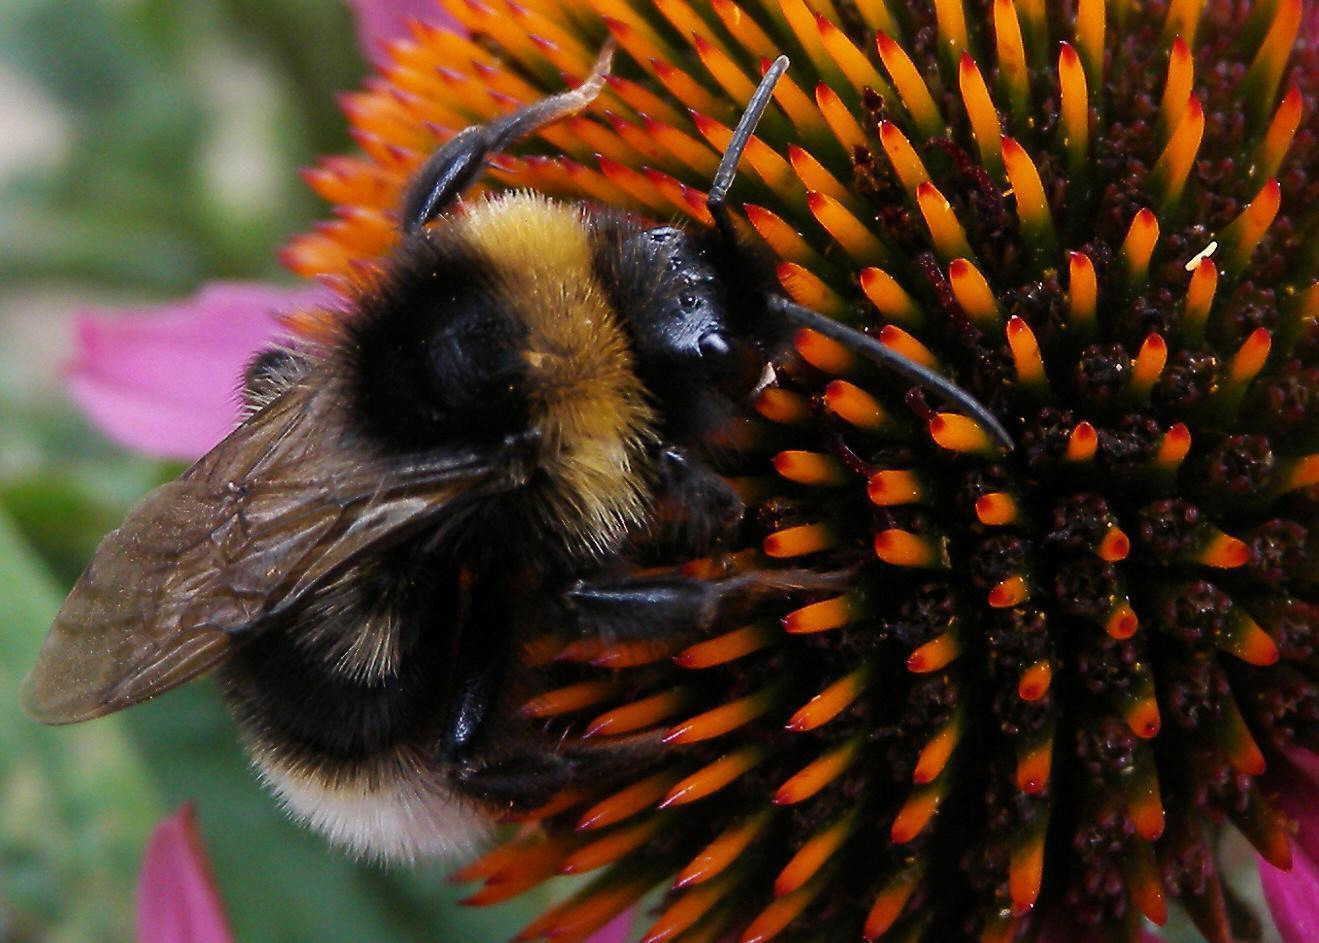 Plan Bee: Scotland's concern over deadly insecticide Brexit U-turn